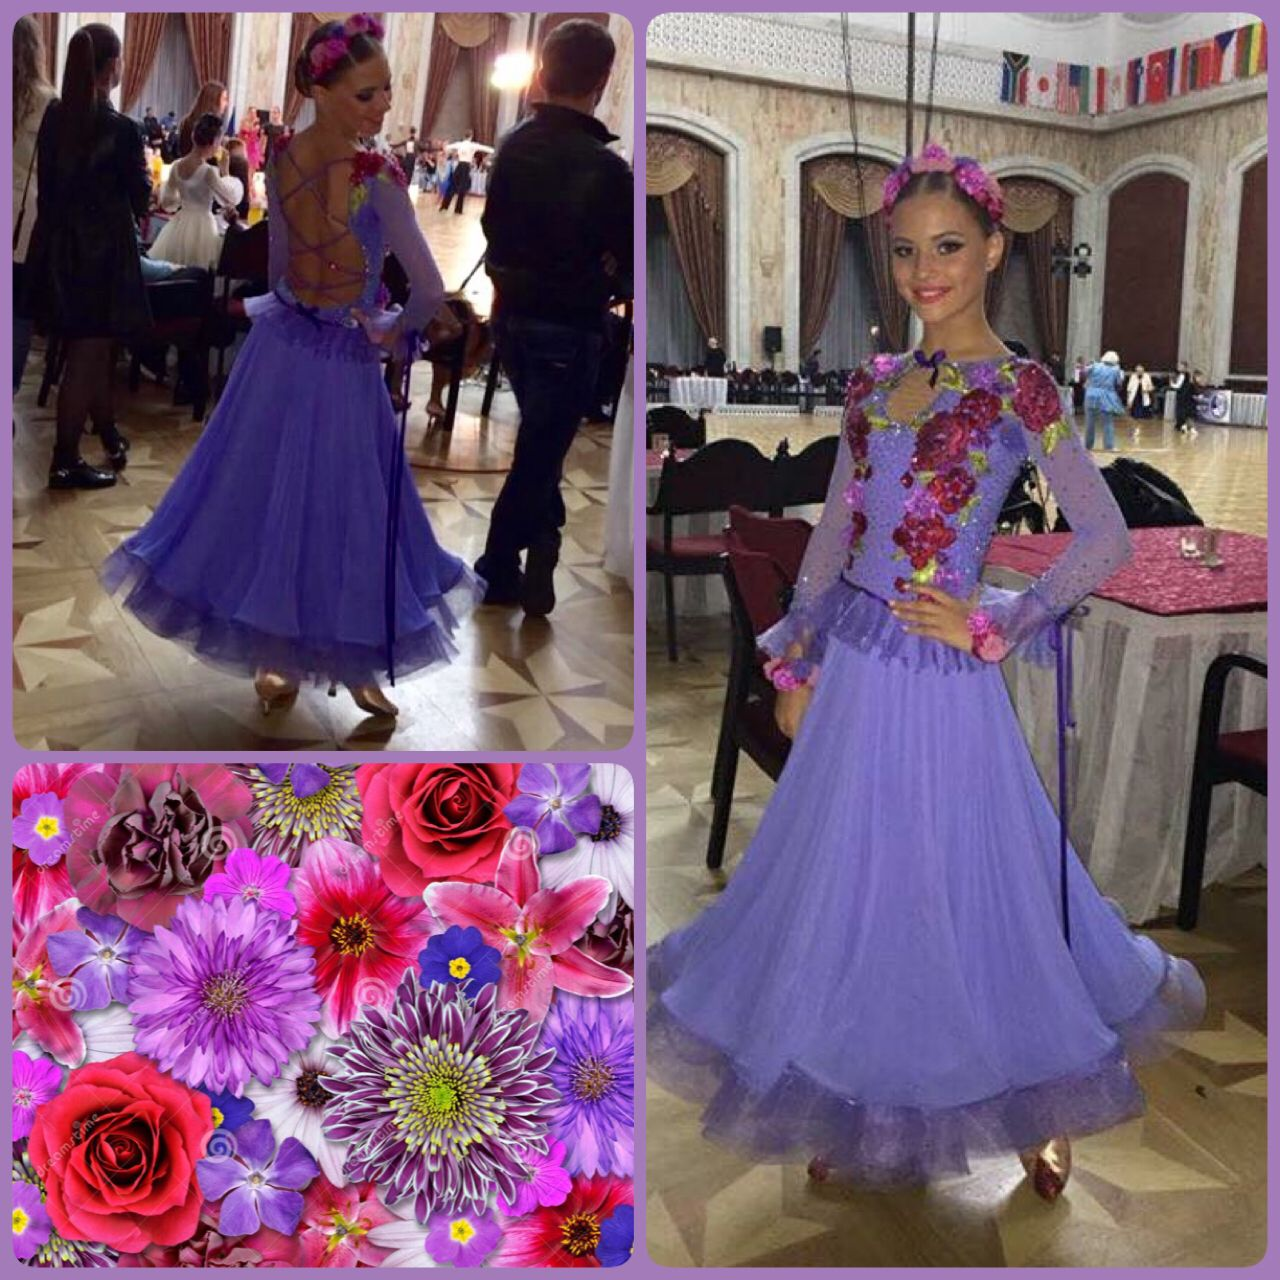 Congratulations to Olia and Misha for reaching semifinal in world championship!!! We are very proud of you! You are dancing amazing, it's so nice to see how hard you are working! You deserve it! And you look gorgeous with this colorful and playful DLK united design dress #dlk_united_design #ballroom #ST #flowers #performance #hard_work #DLK